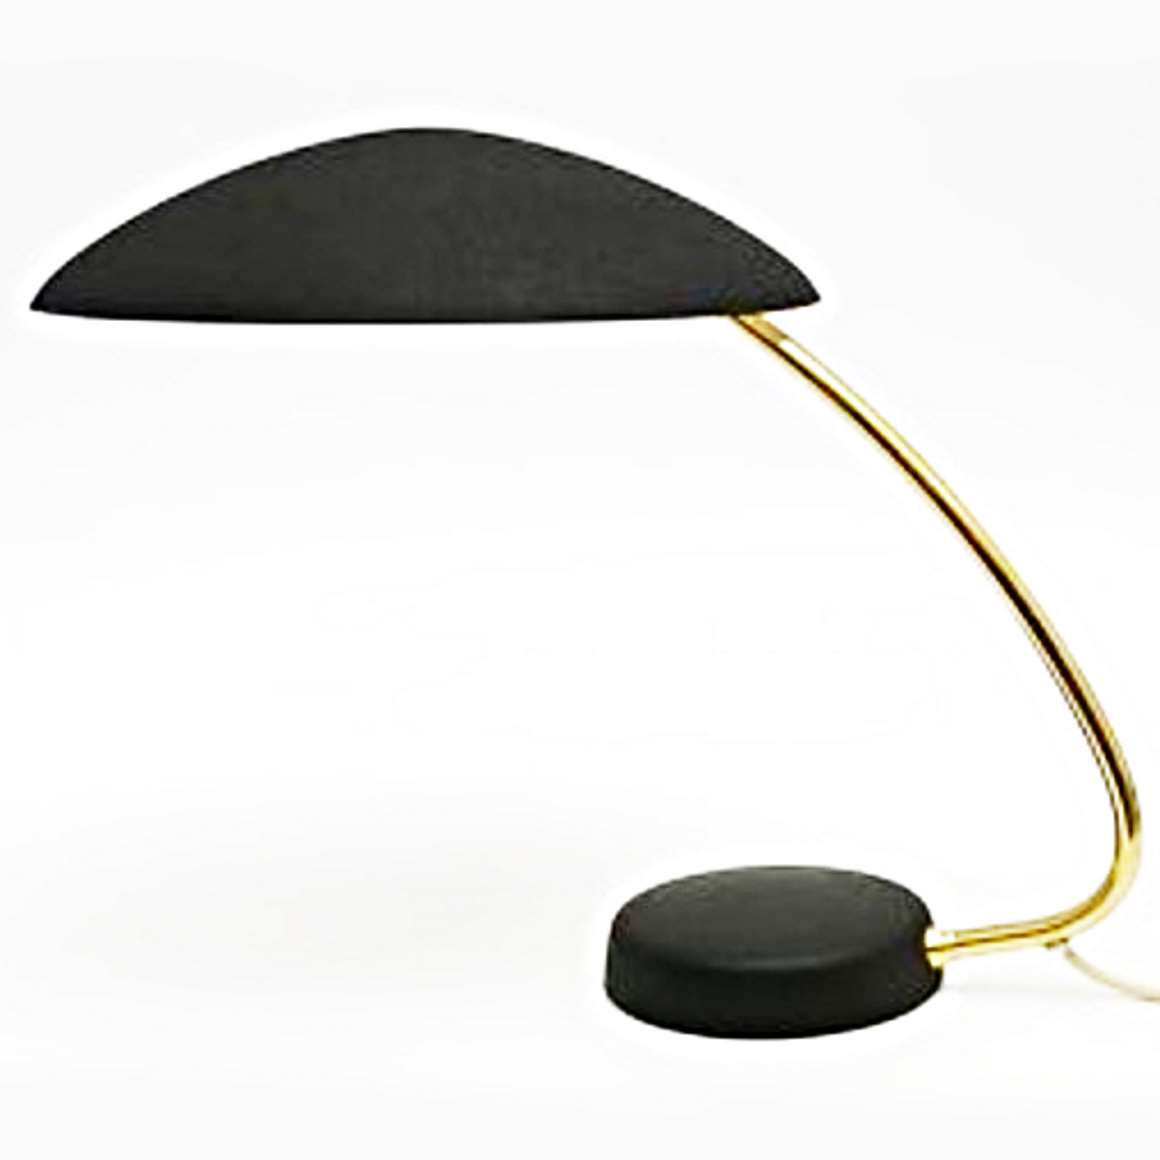 1950s Cosack Desk Lamp - Black version - Produced by Gebrüder Cosack (Gecos)